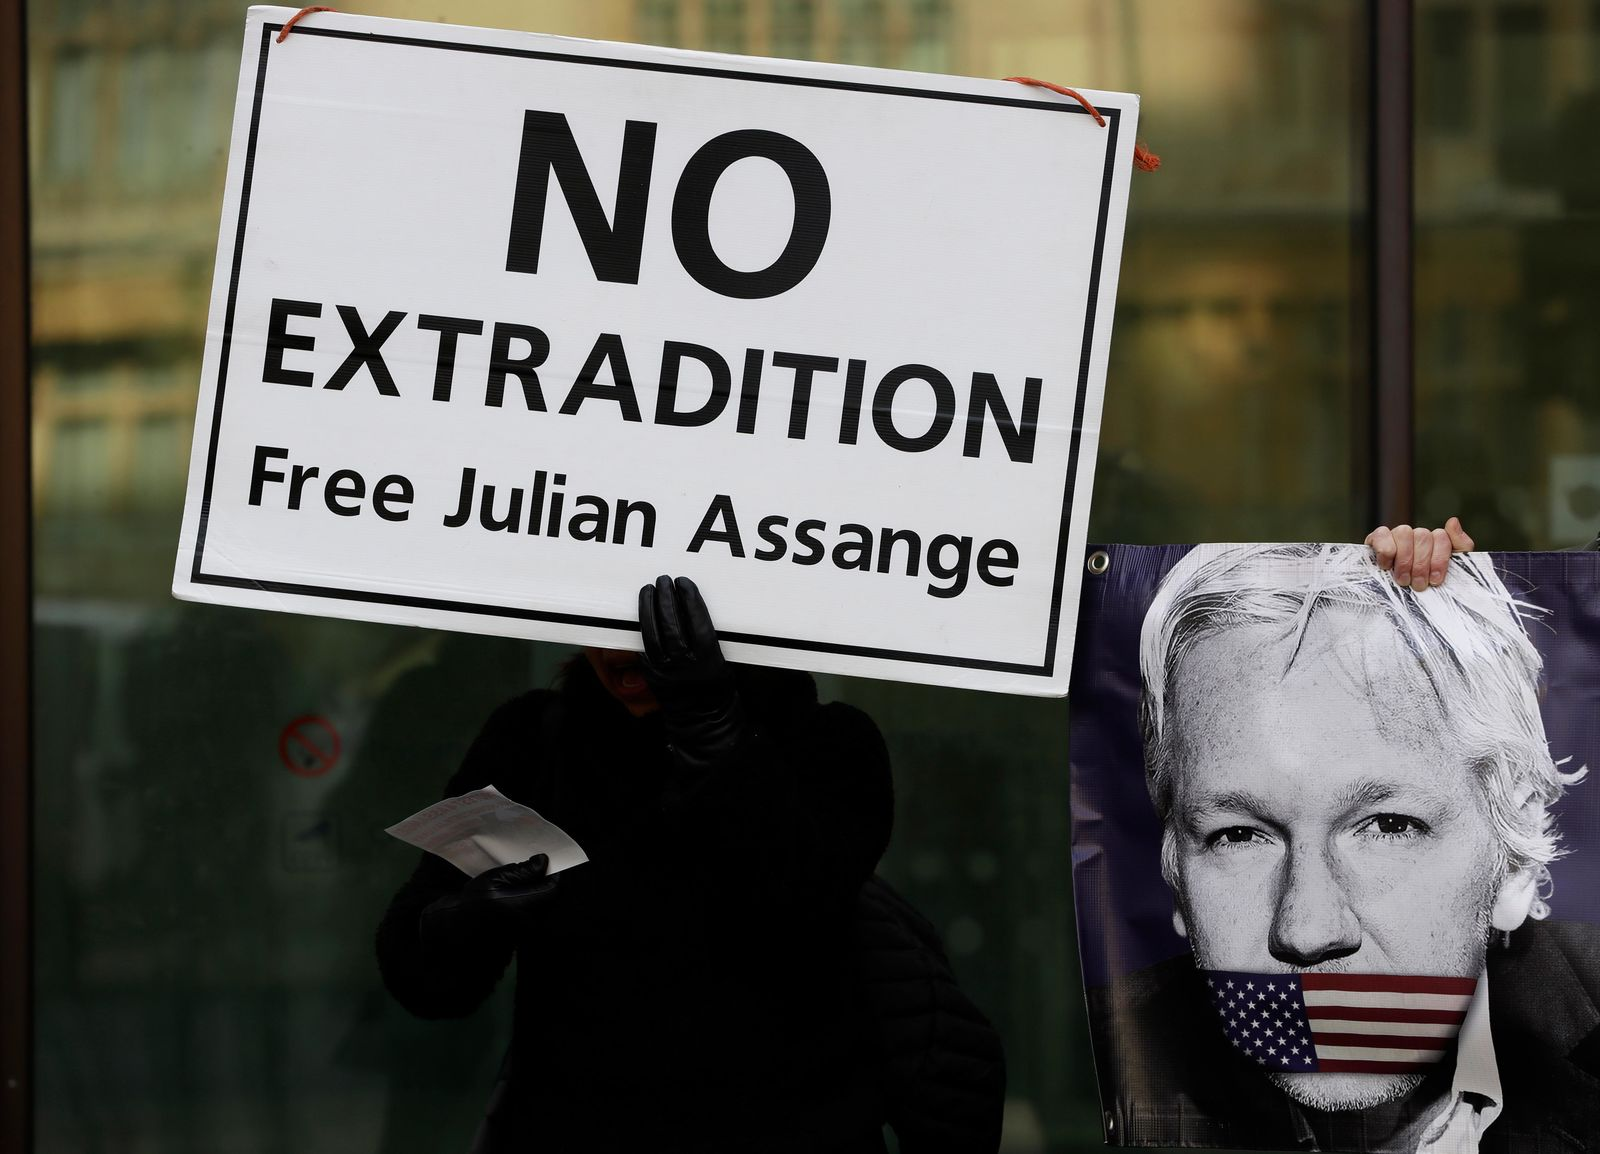 Una protesta a favor de Julian Assange en Londres el 13 de enero del 2020. (AP Photo/Kirsty Wigglesworth)